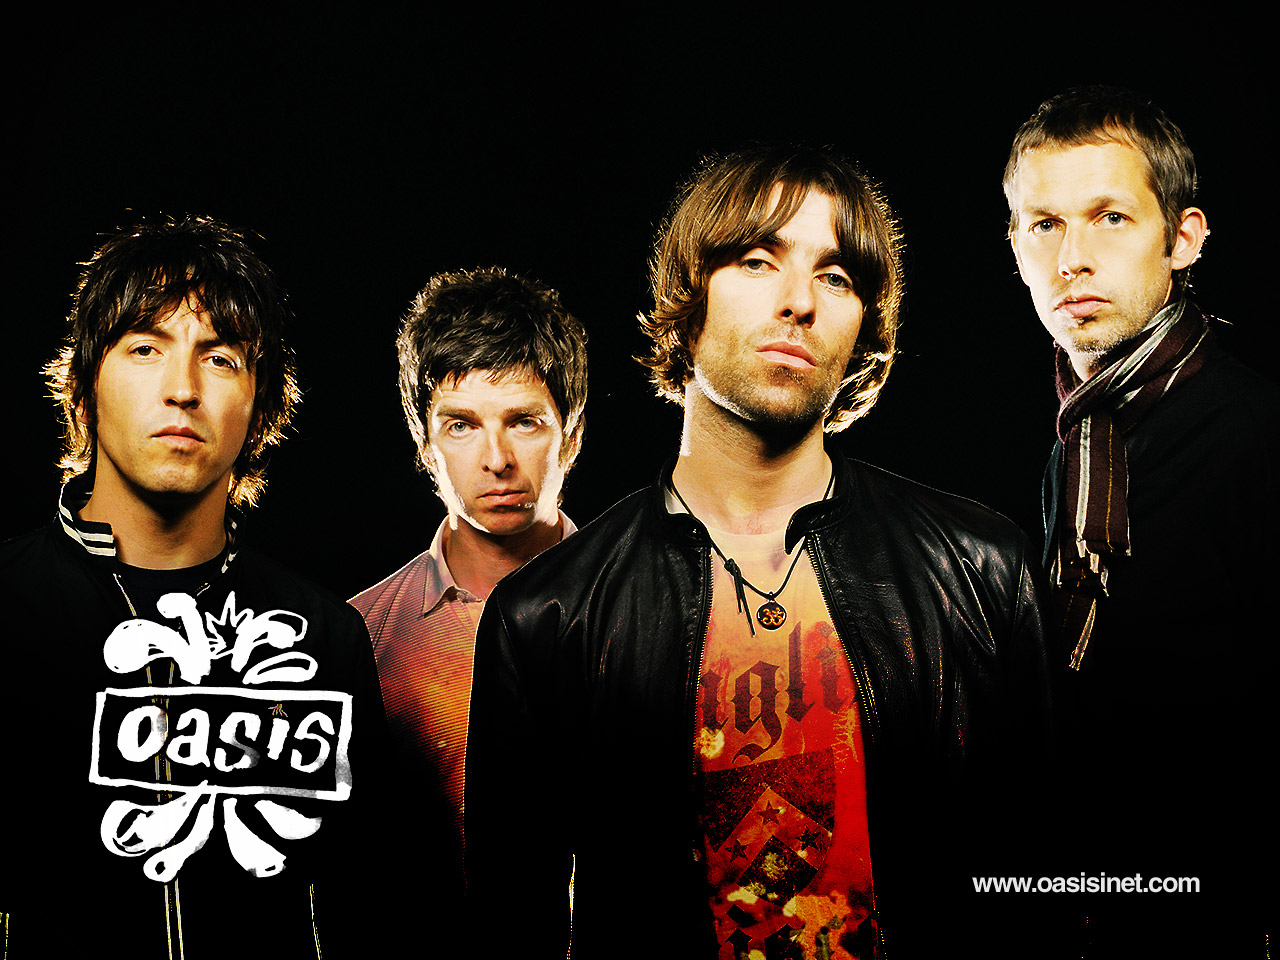 CRUMBLE: Music and Revolution: OASIS Oasis Band Wallpaper